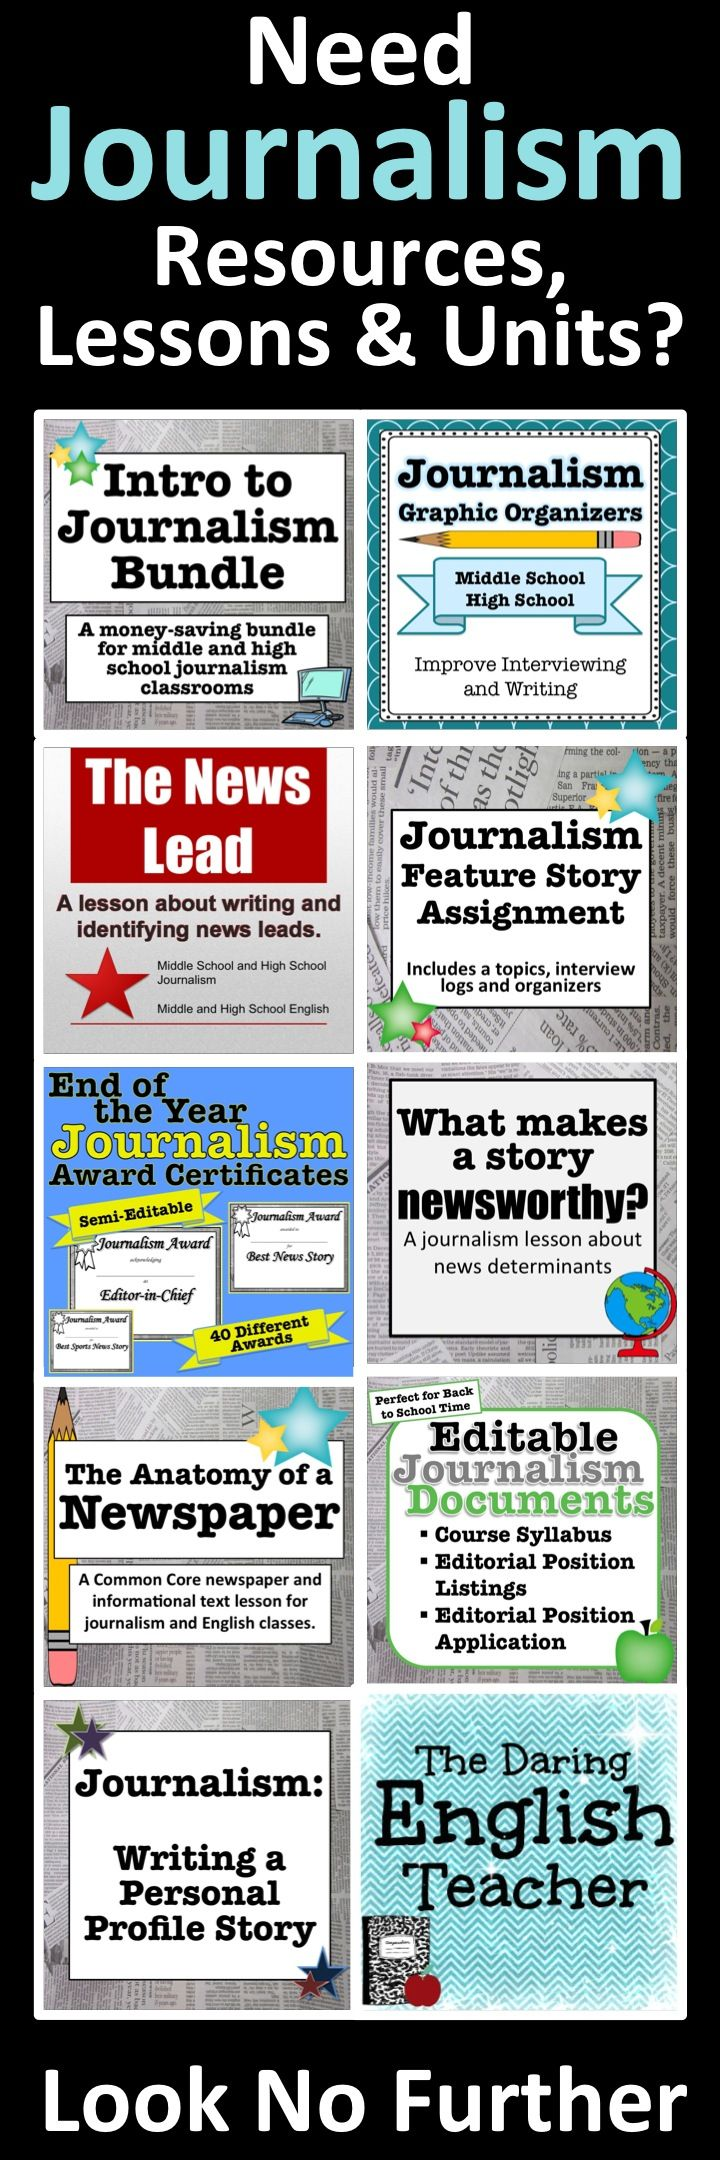 Journalism and yearbook advisors rejoice! Find resources, lessons, and units here.